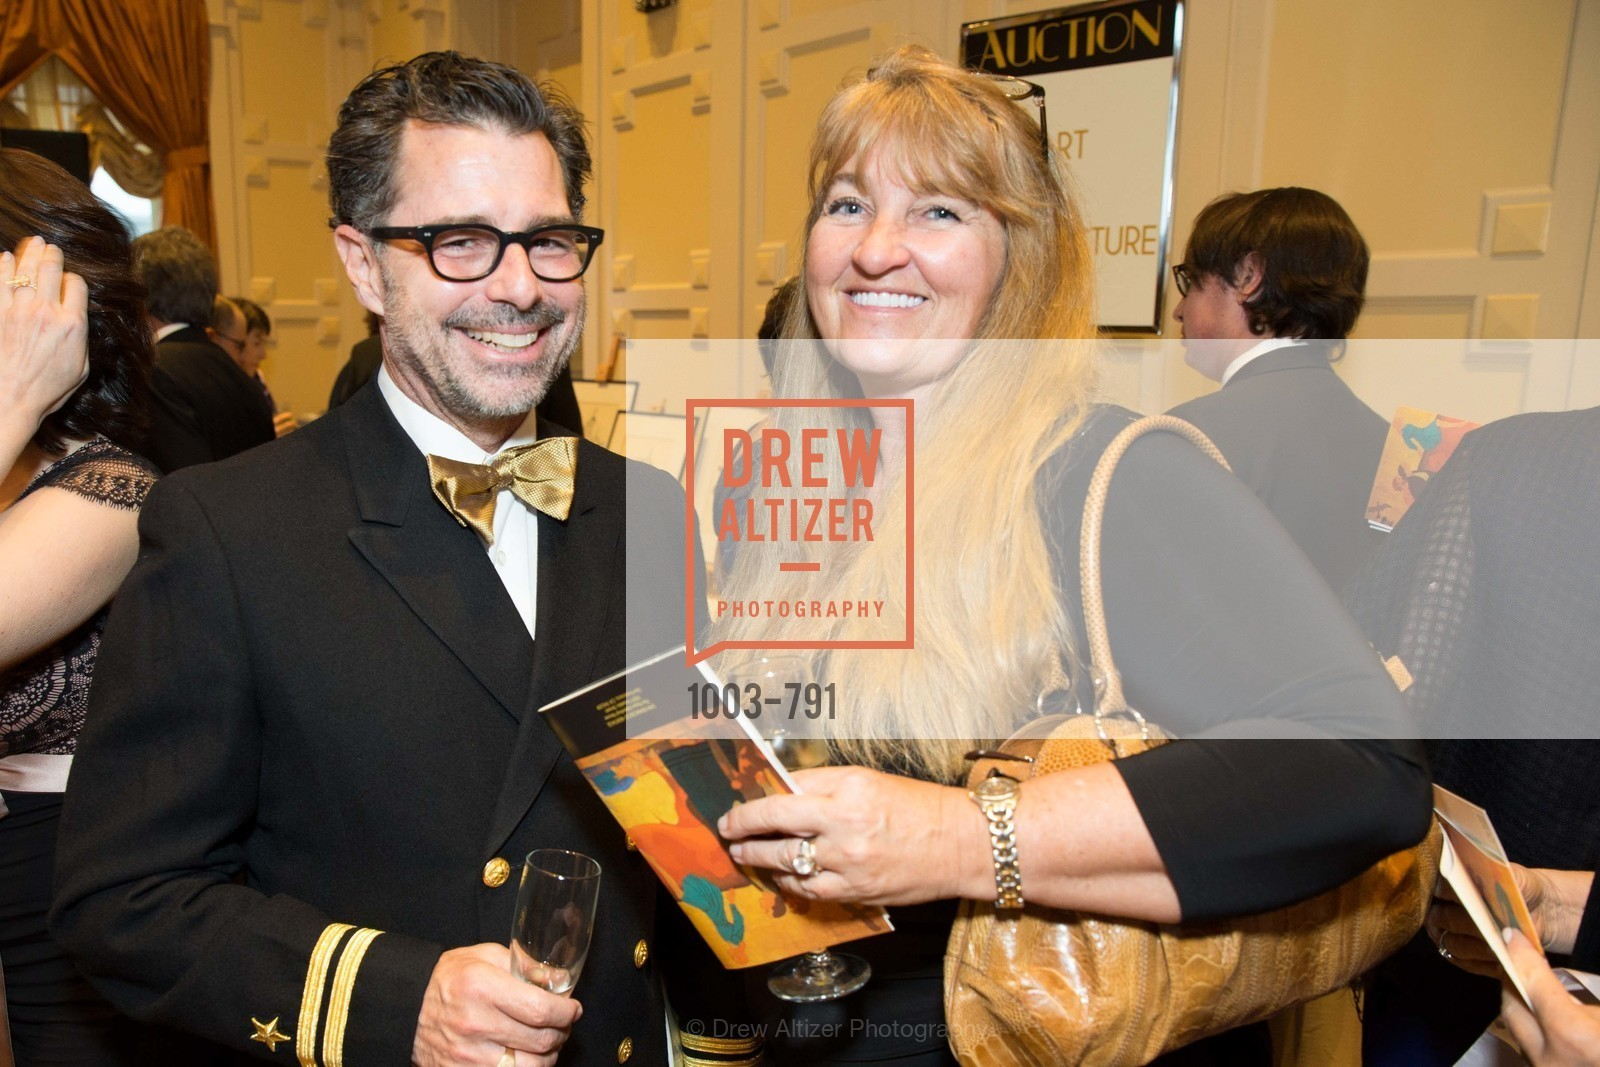 Diane Petty, SAN FRANCISCO HERITAGE Soiree 2015, US, April 19th, 2015,Drew Altizer, Drew Altizer Photography, full-service agency, private events, San Francisco photographer, photographer california